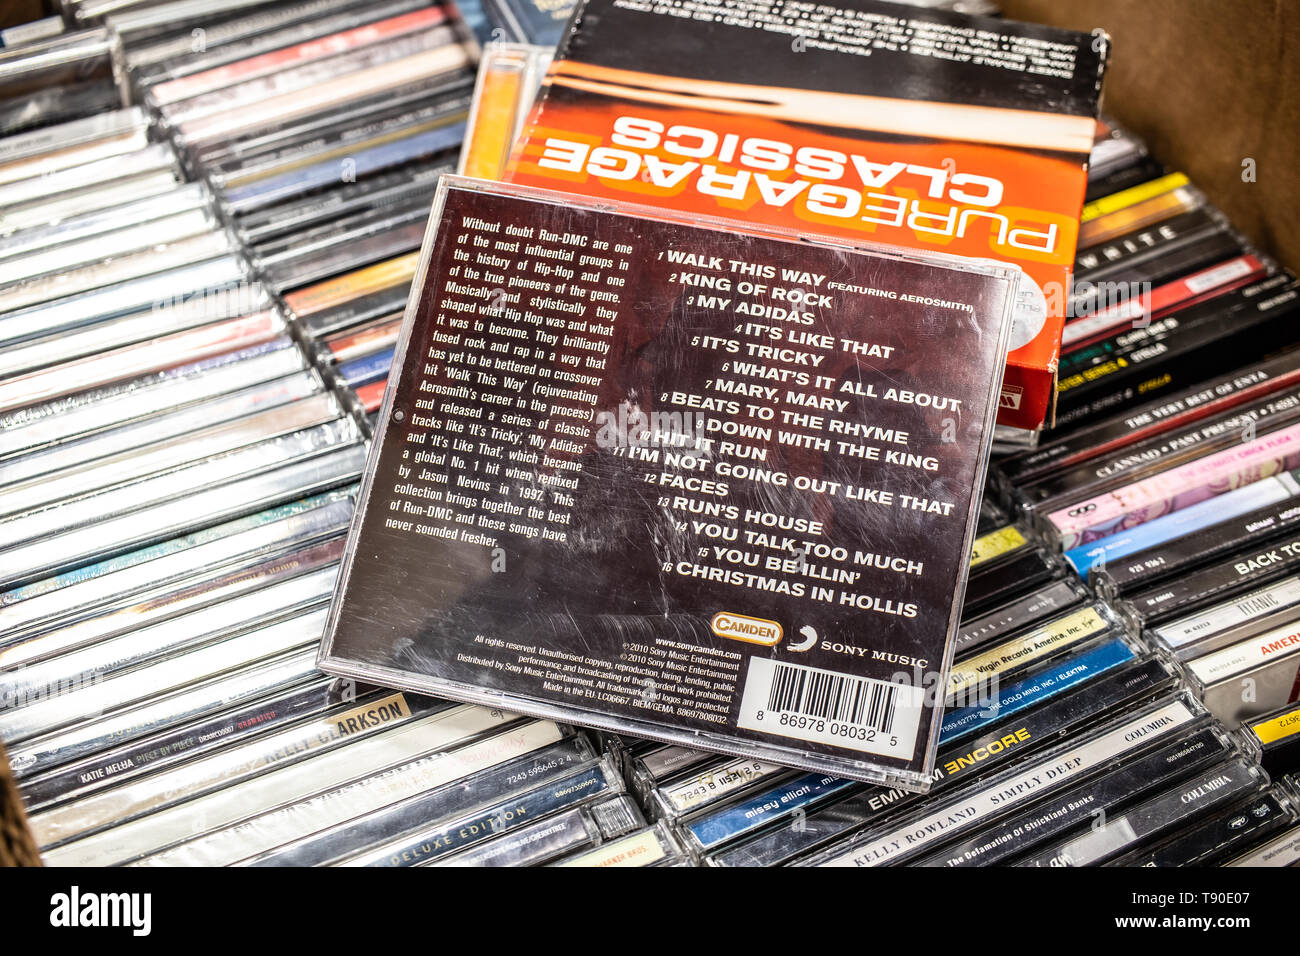 Nadarzyn, Poland, May 11, 2019: Run-DMC CD album Walk this way, the best of on display for sale, famous American hip hop group, collection of CD music - Stock Image